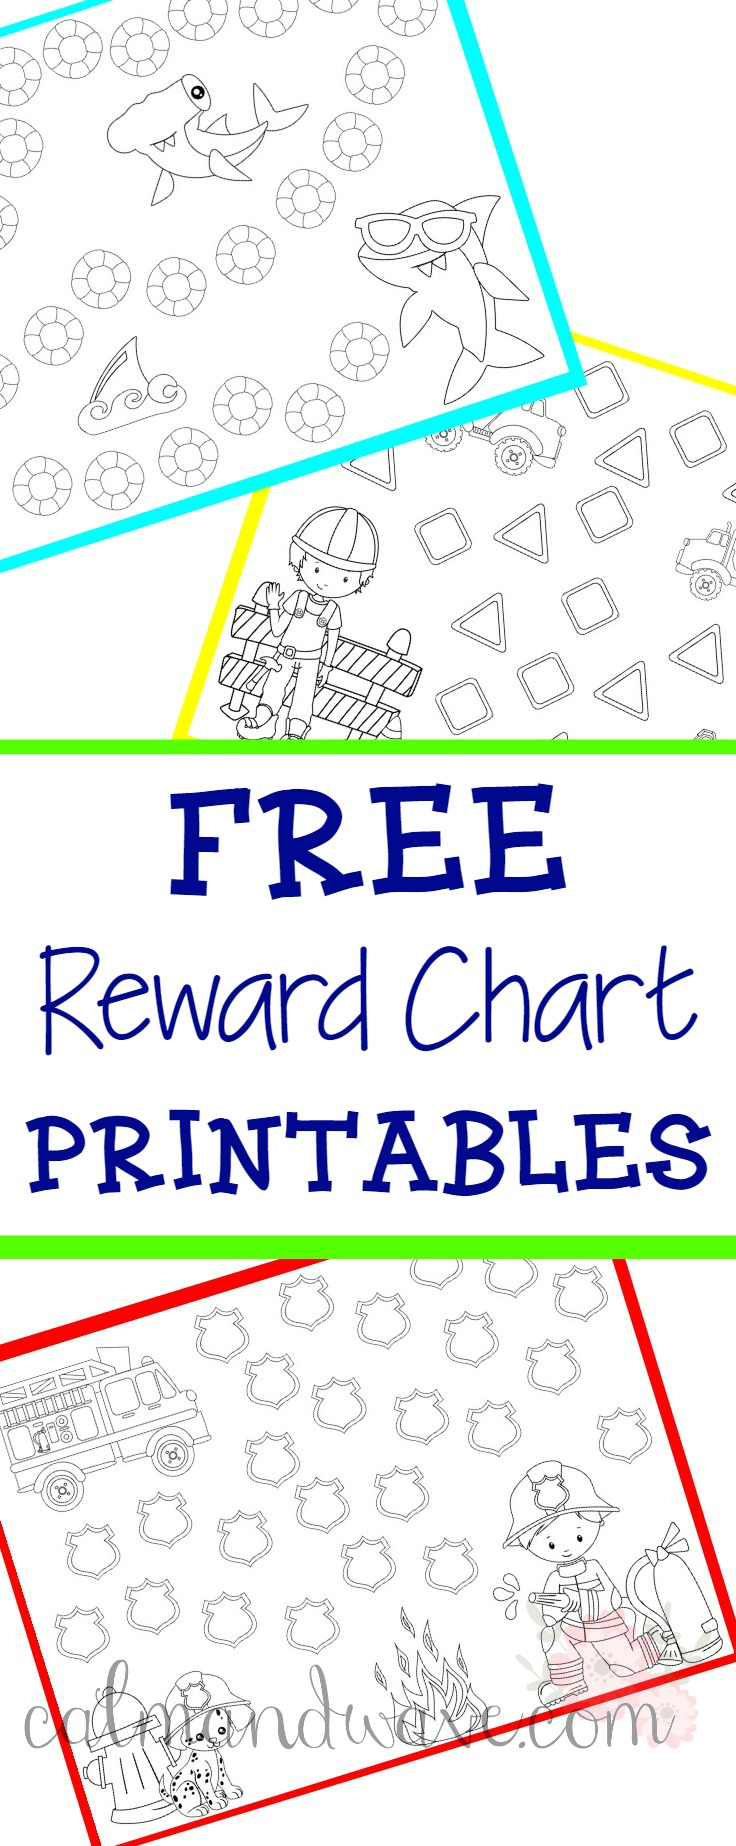 photograph relating to Printable Reading Charts identified as 3 Cost-free Gain Chart Printables Chore Chart Looking through Chart